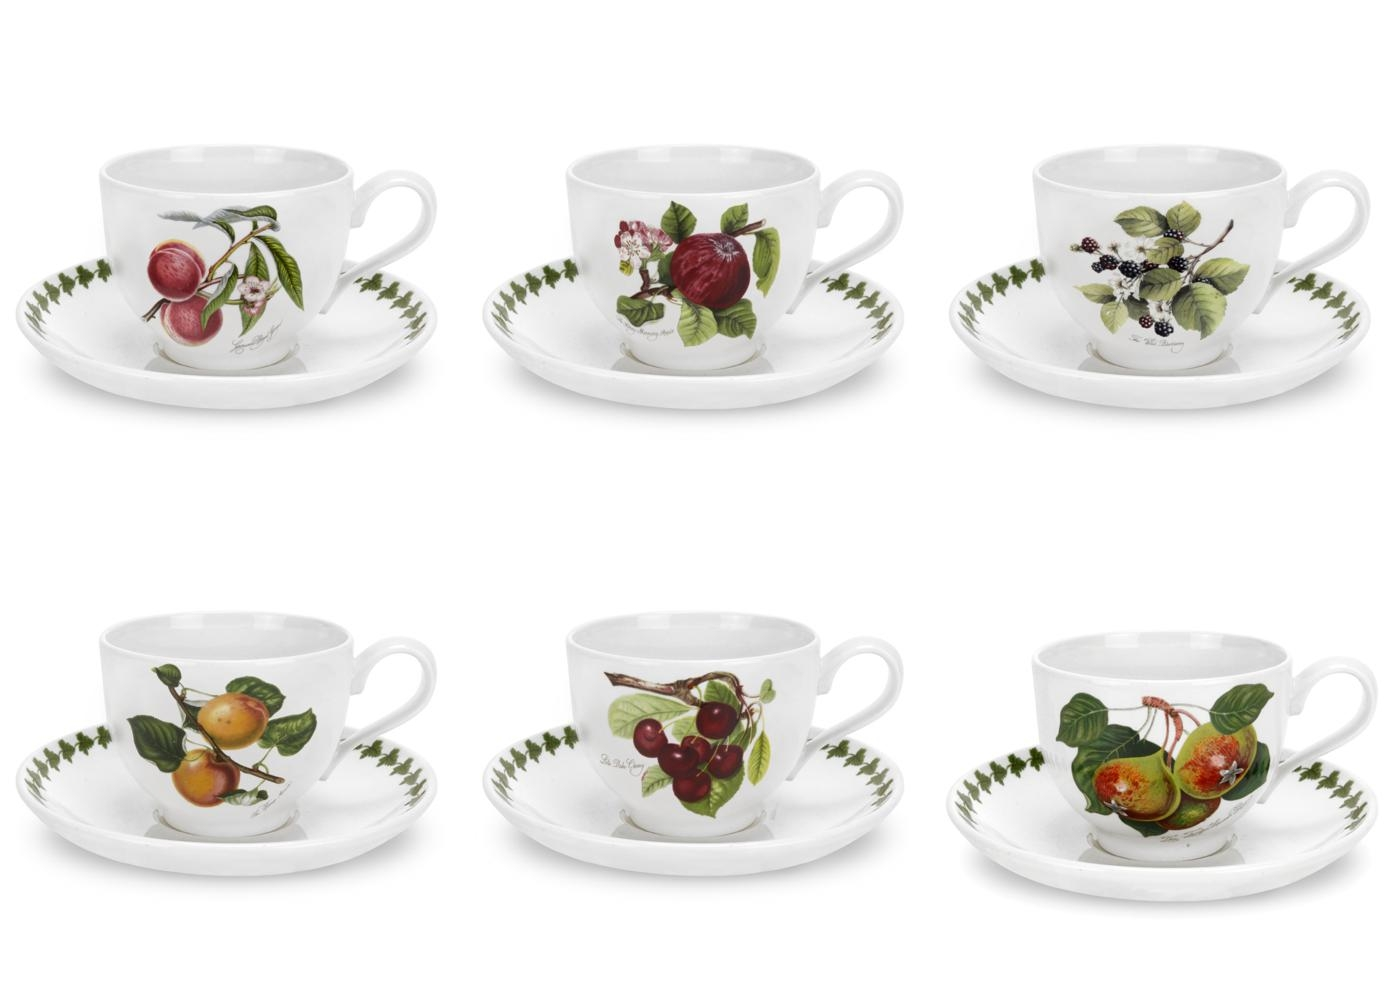 Portmeirion Pomona Set of 6 Breakfast Cups and Saucers Assorted Motifs image number 0